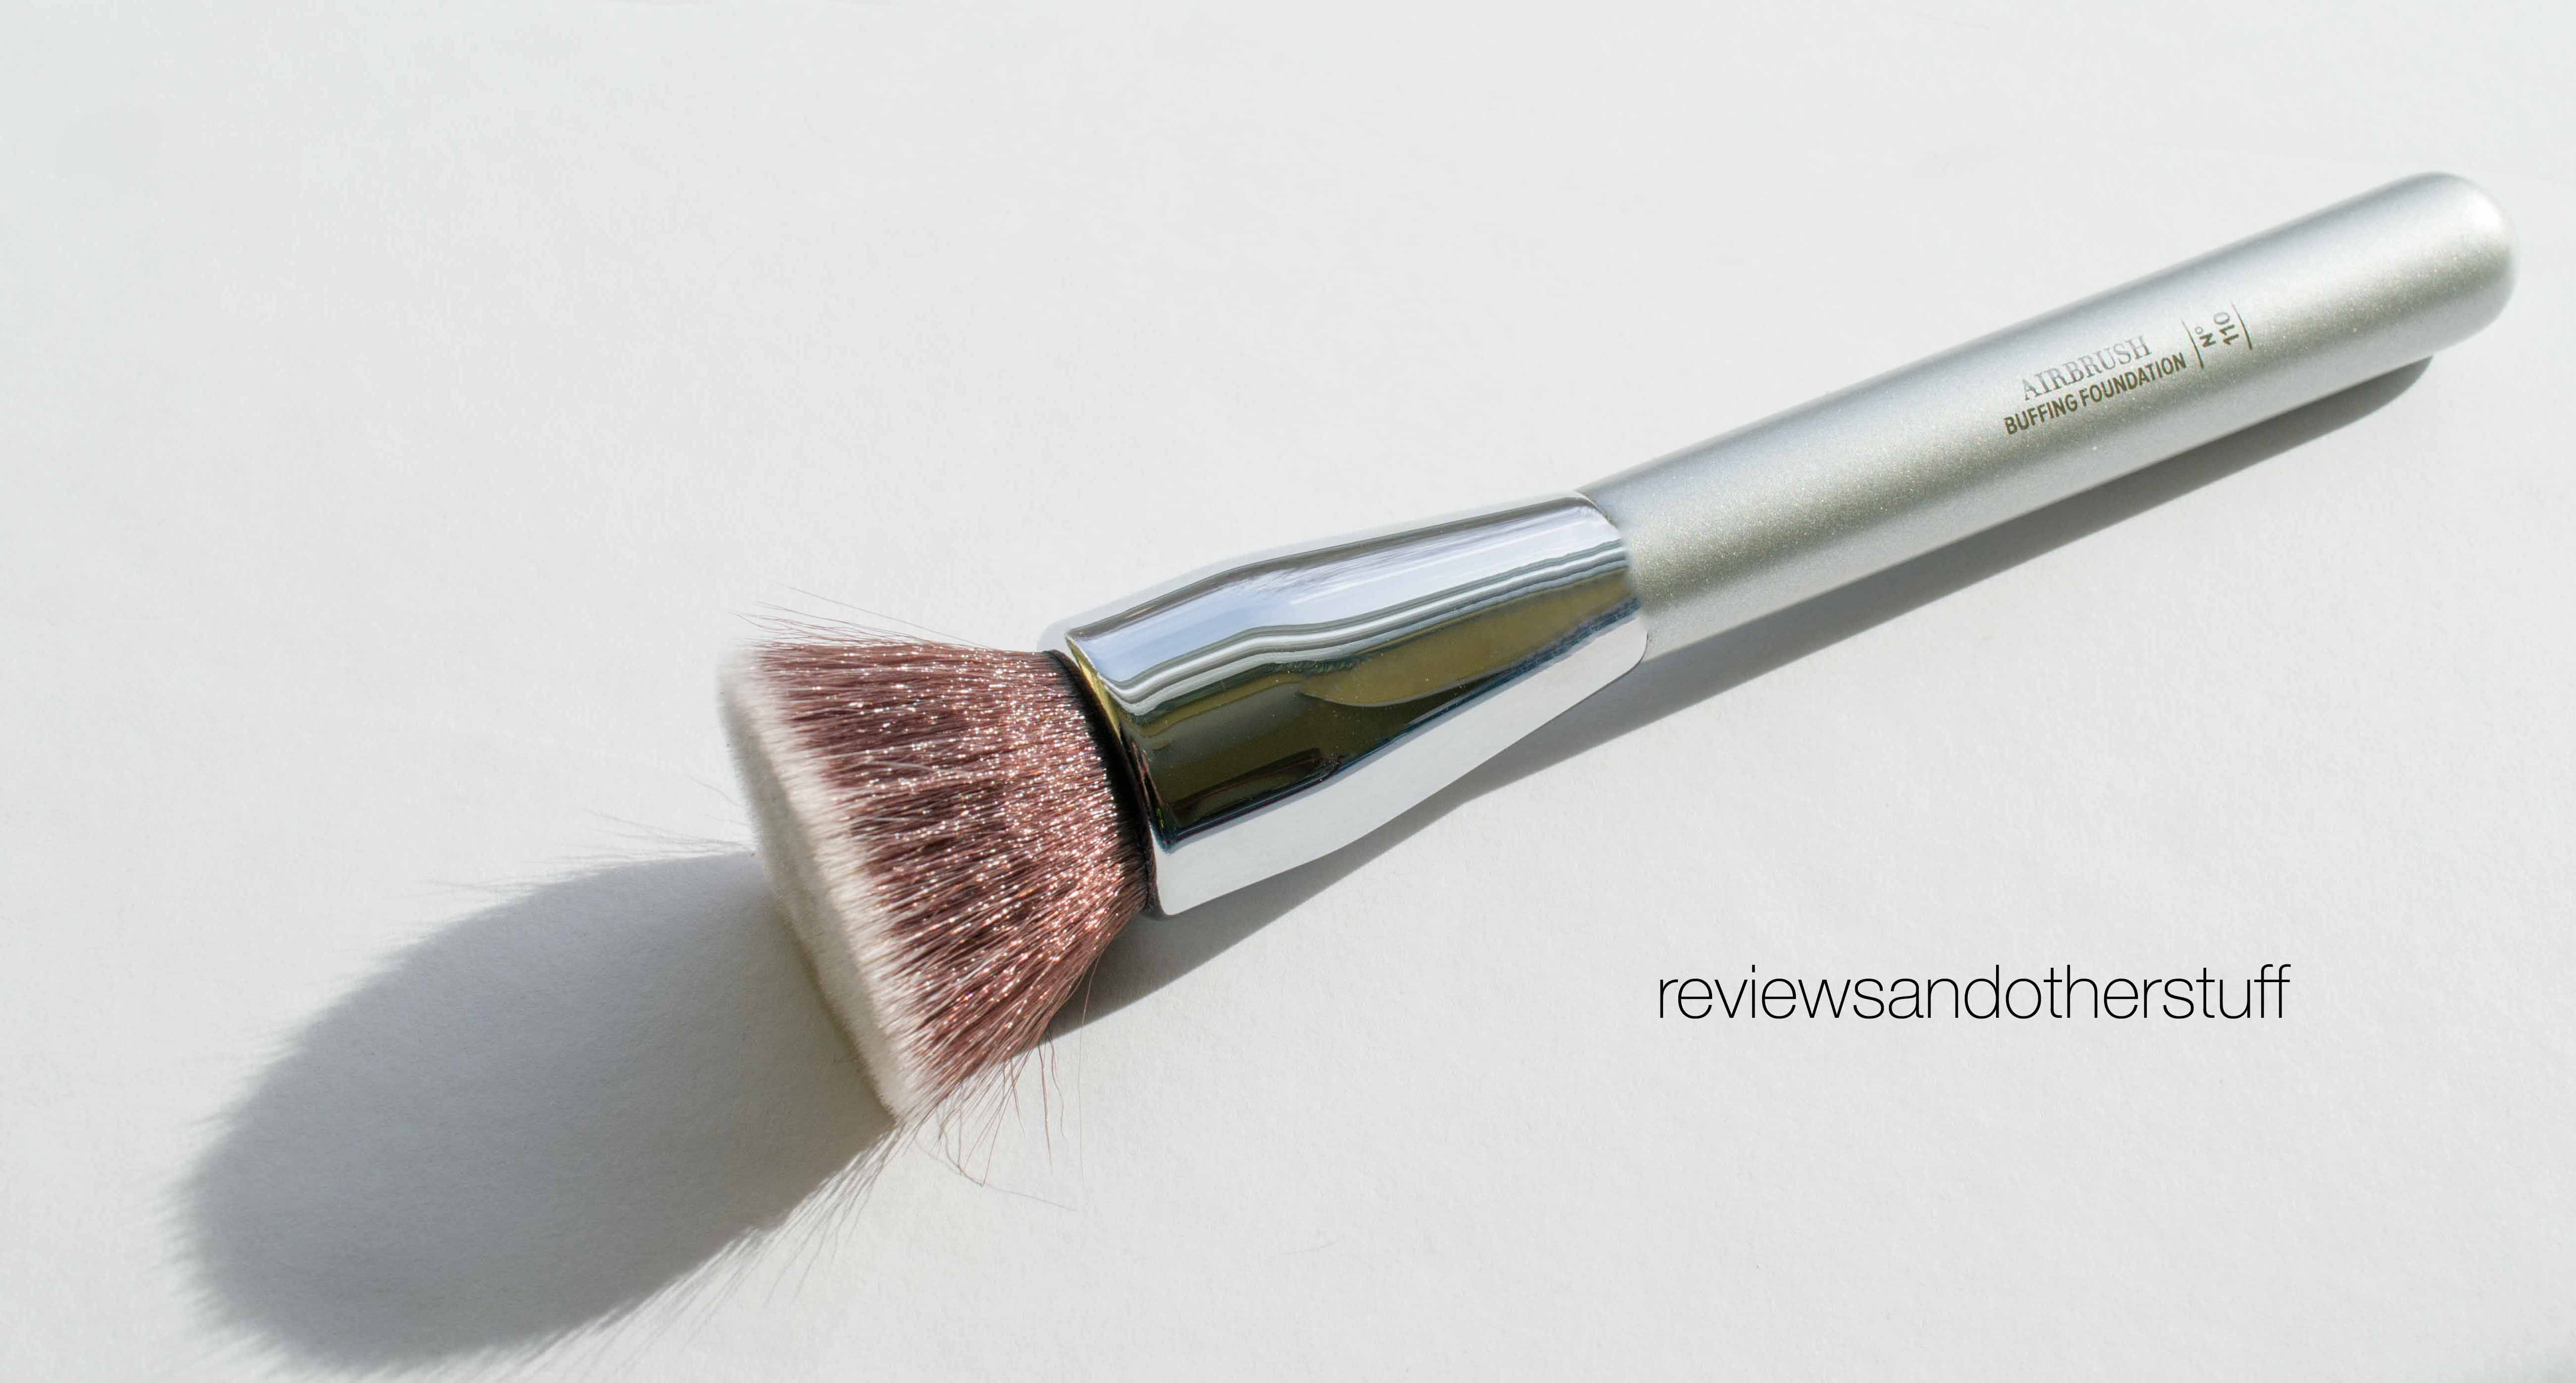 It Cosmetics x ULTA Airbrush Complexion Perfection Brush #115 by IT Cosmetics #18